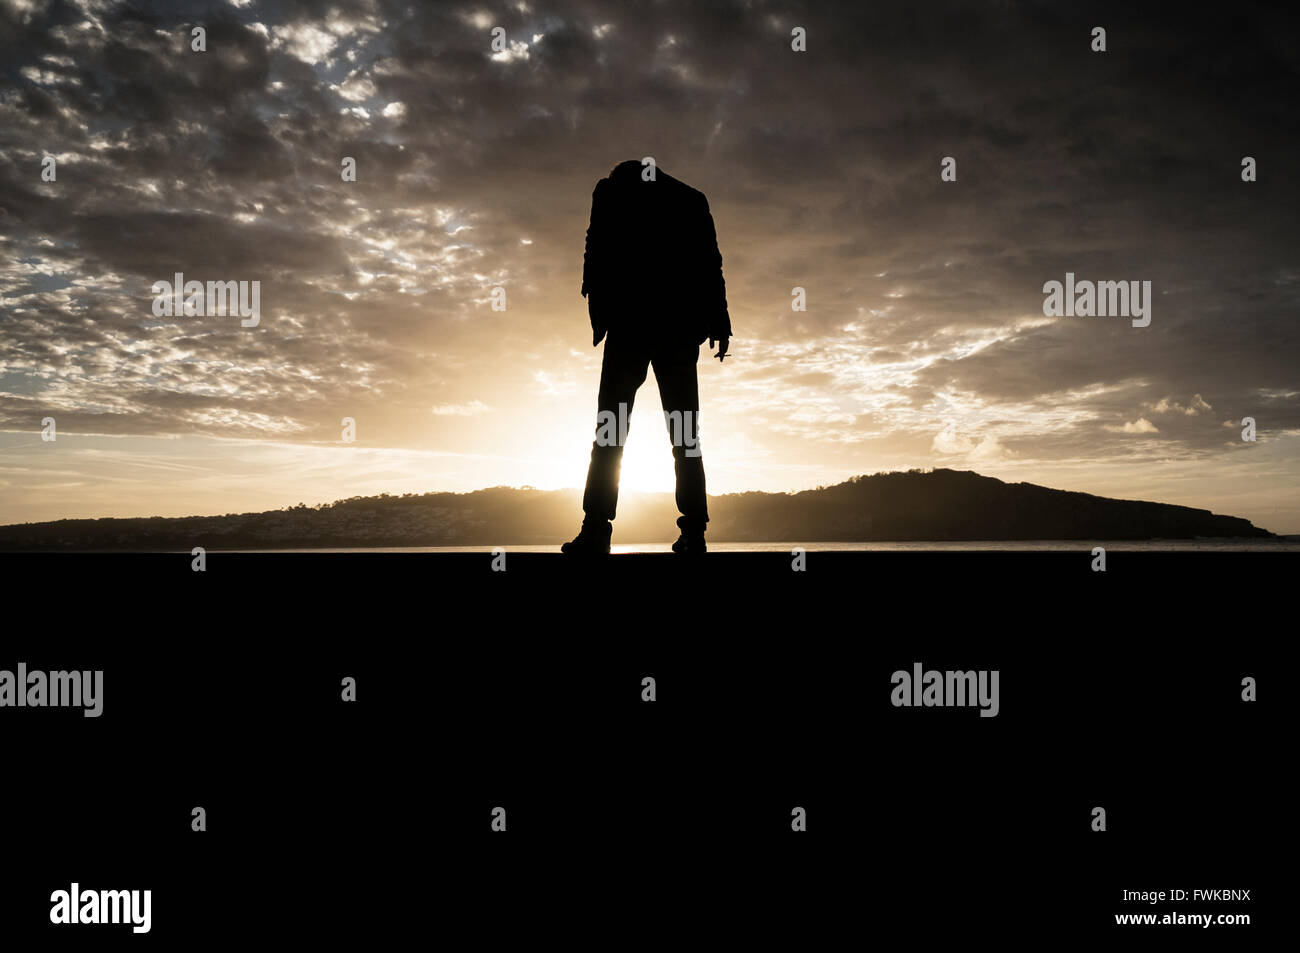 Silhouette Person Standing On Field Against Sky During Sunset - Stock Image